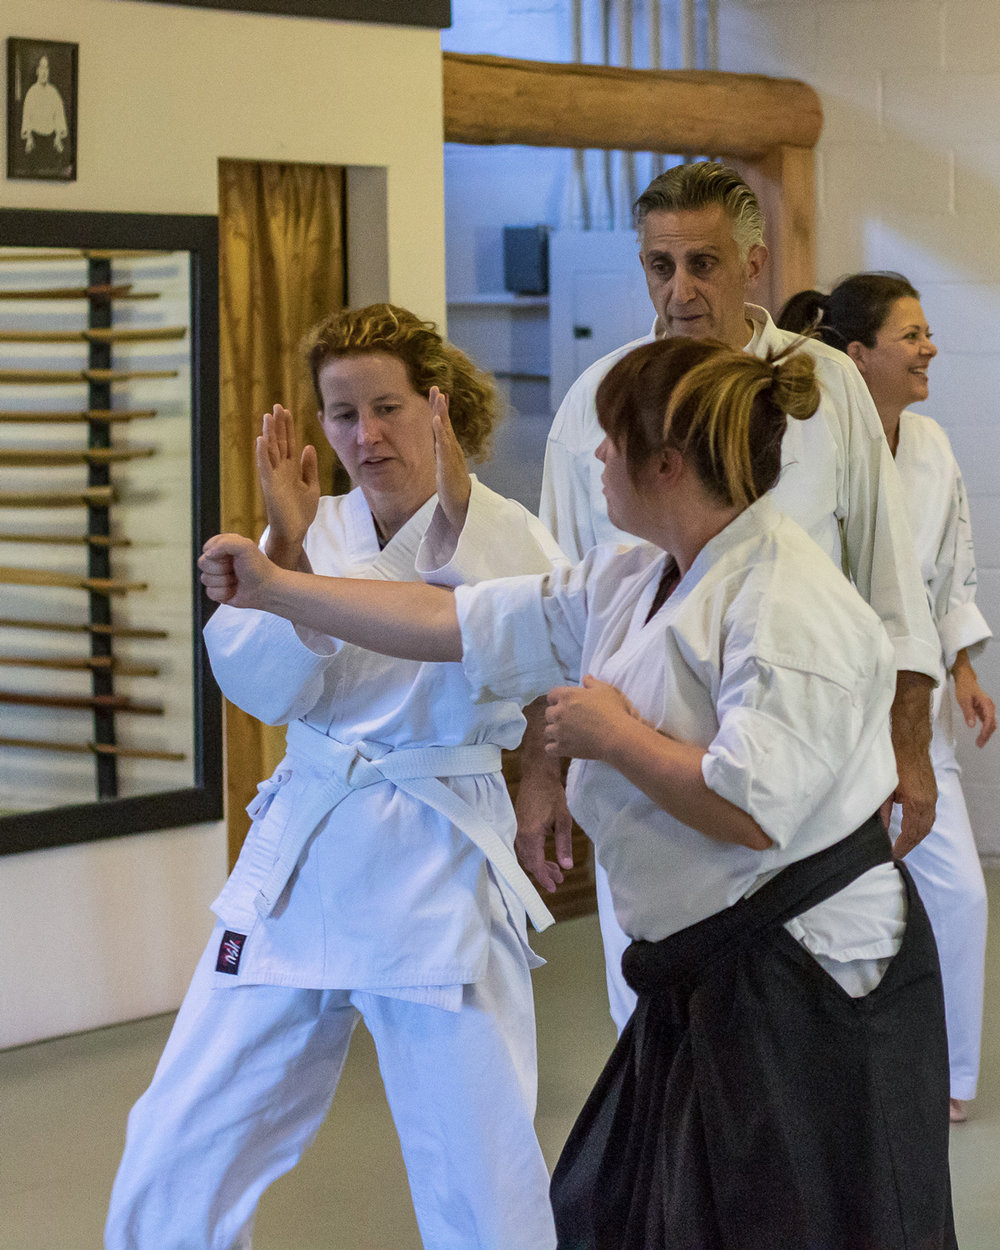 ADULT CLASS - Aikido is a martial art that goes about things in a totally unique way. You won't spend your valuable time becoming more combative and seeking out petty competition. In aikido, you'll learn to be expressive without being violent. While nonviolent in your practice, the power in your techniques will prove appropriate and effective to any situation which may arise.The philosophy is one of win-win.You'll work with the energy of the attack. The focus will be on self-defense and inner awareness. Skills you'll pick up range from eloquent verbal neutralization skills to gritty survival skills. All types of professionals can benefit. People from any walk of life can benefit. The best way to experience aikido is to schedule a time to visit the dojo and observe/attend a class.